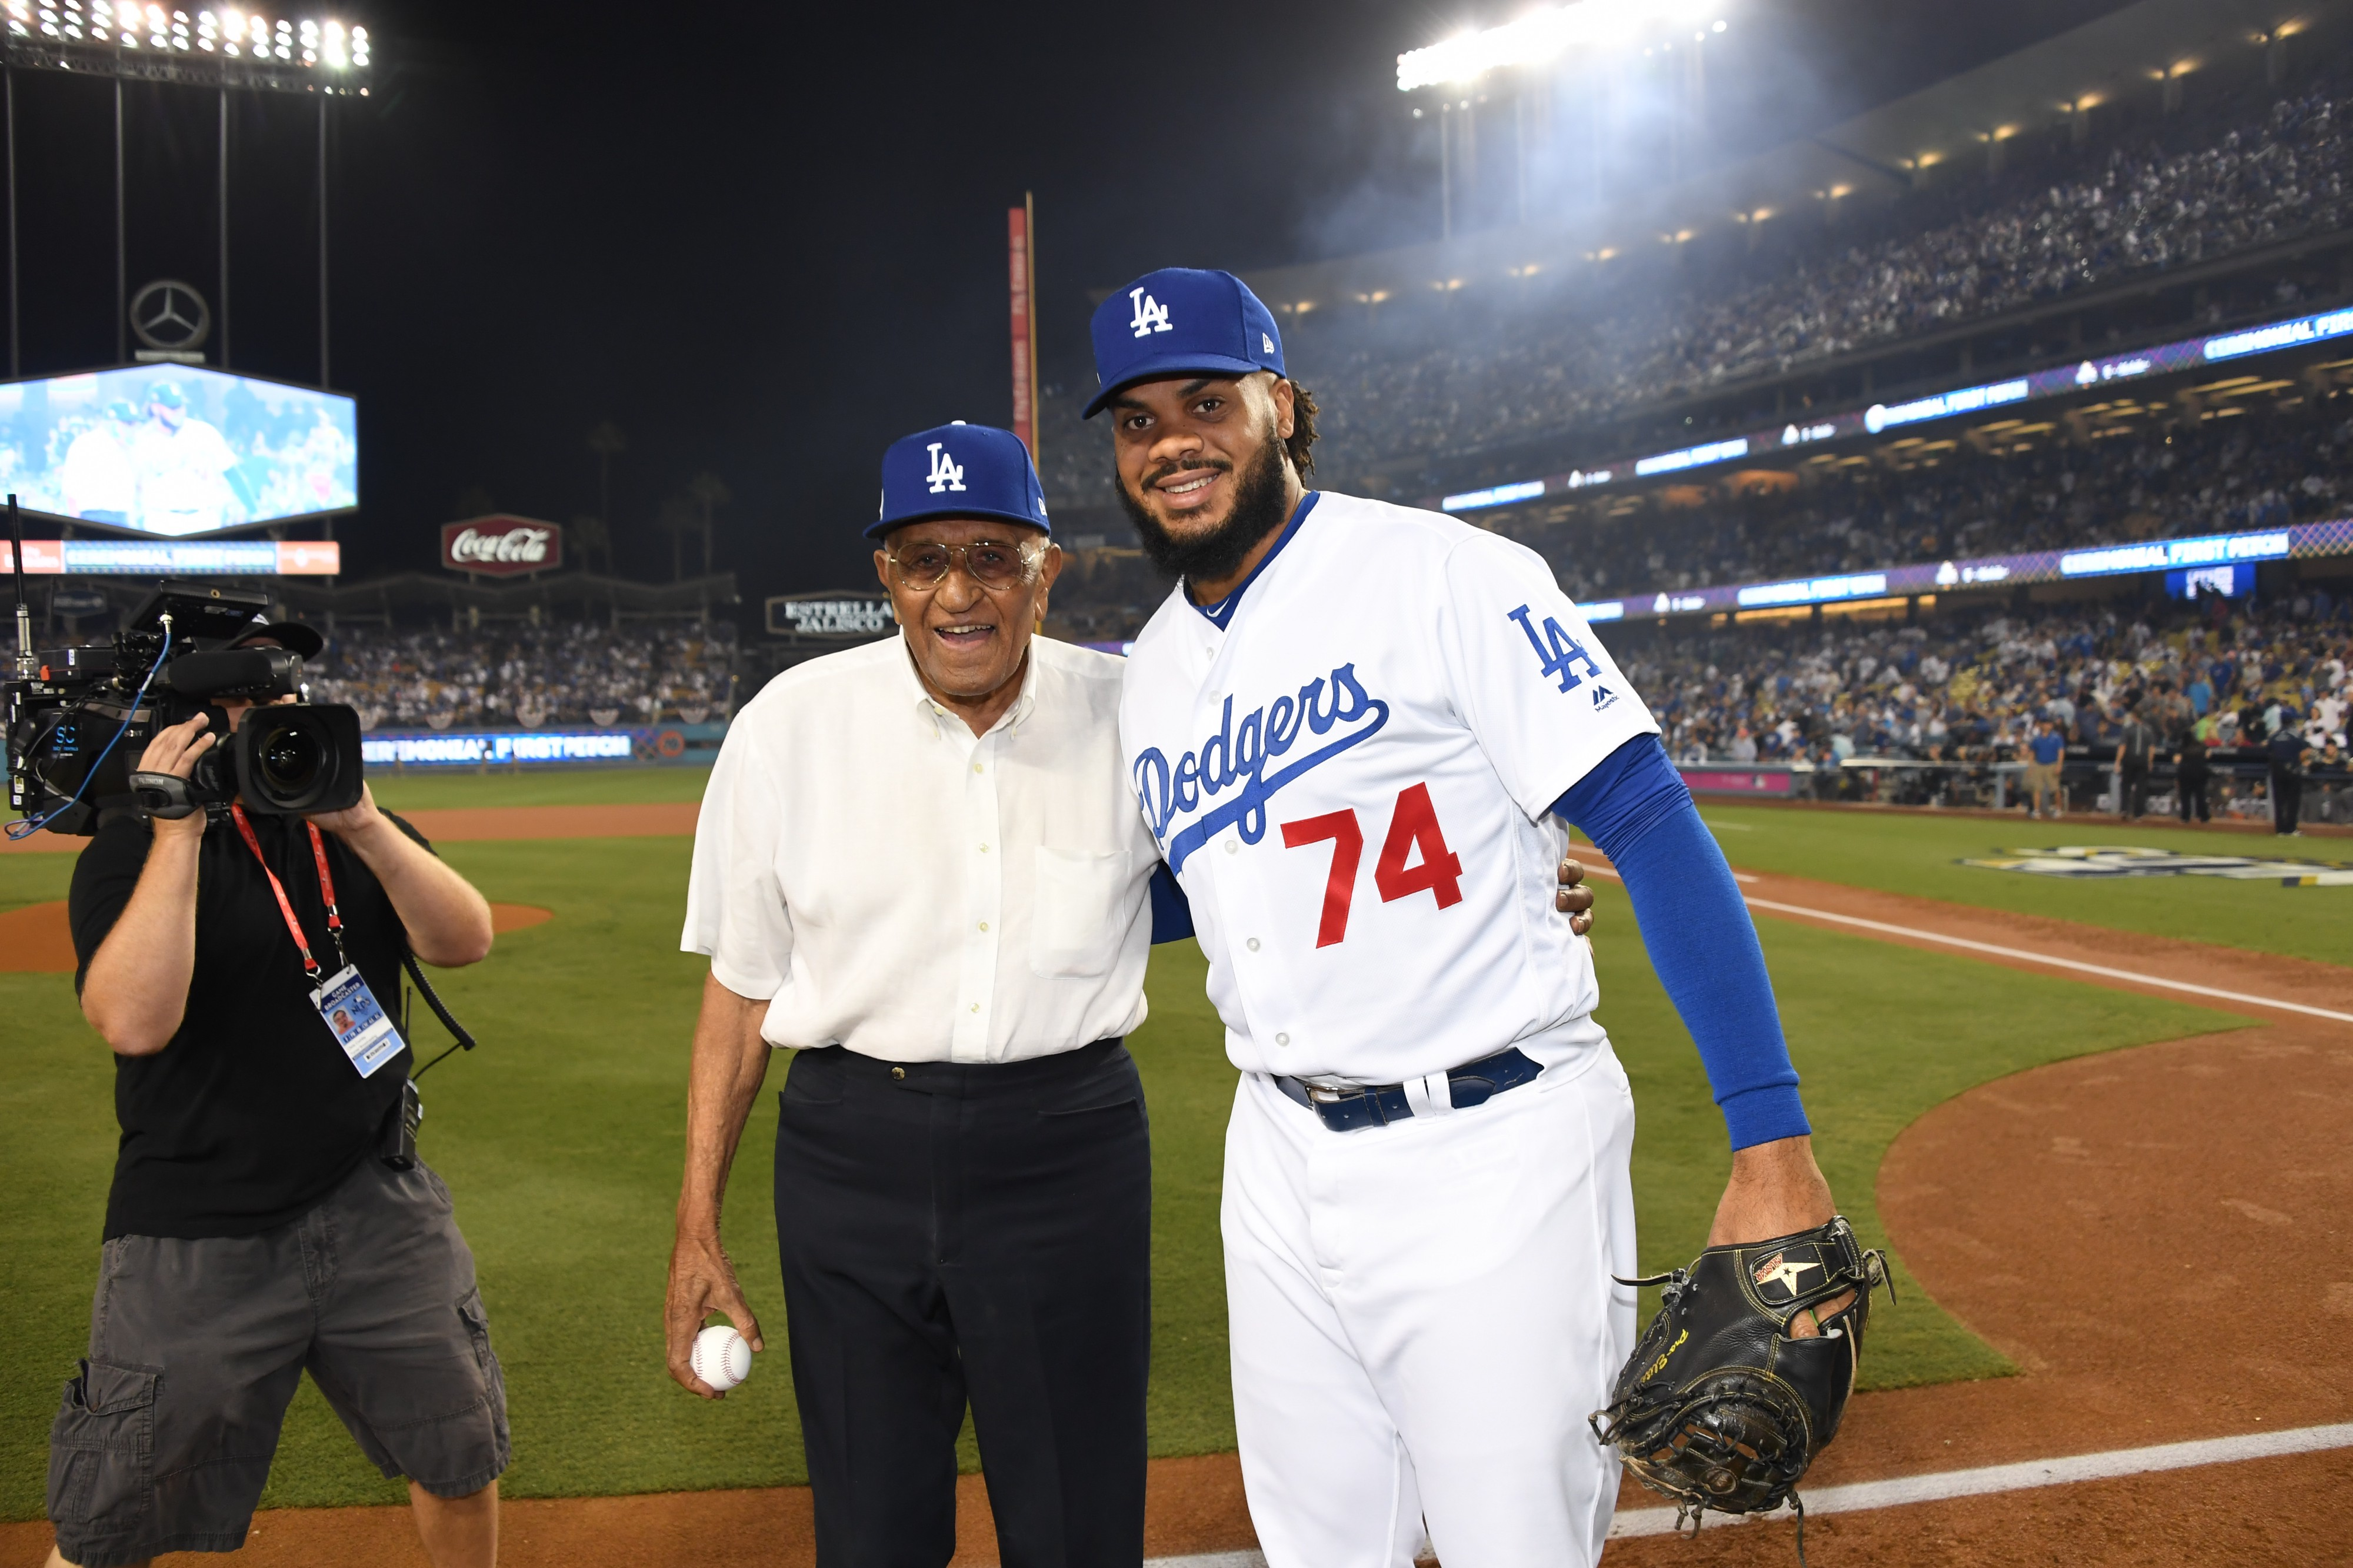 newest collection f781e 7b0c3 Dodgers to wear uniform patch to honor Don Newcombe